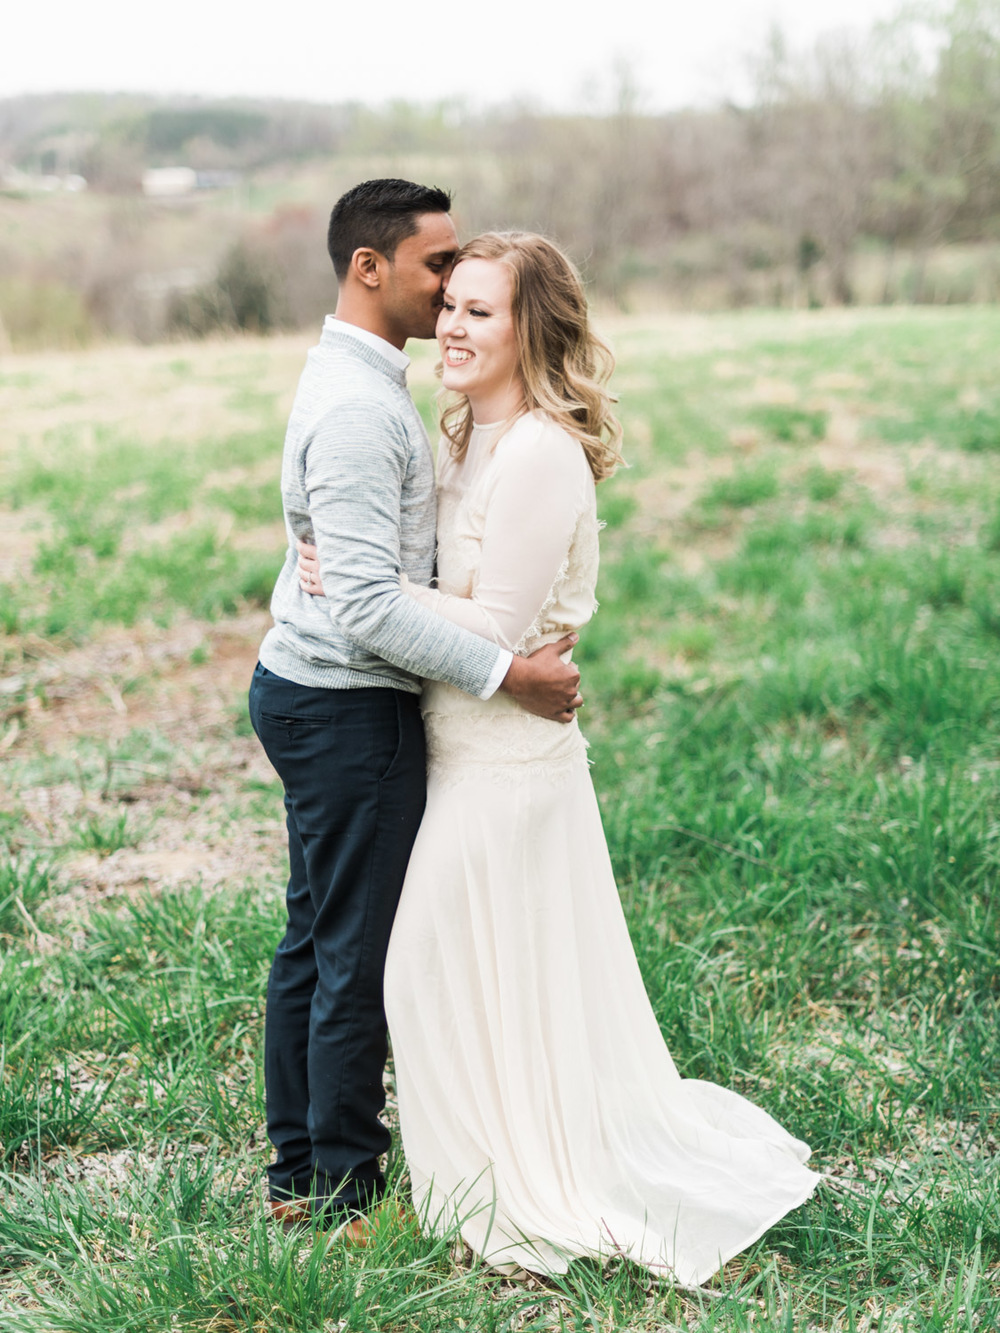 Charlottesville | Sweet Briar Engagement Photography | Classy Wedding Photos | Husband and Wife Team | Richmond, Charlottesville, Lynchburg | kelseyandnate.com